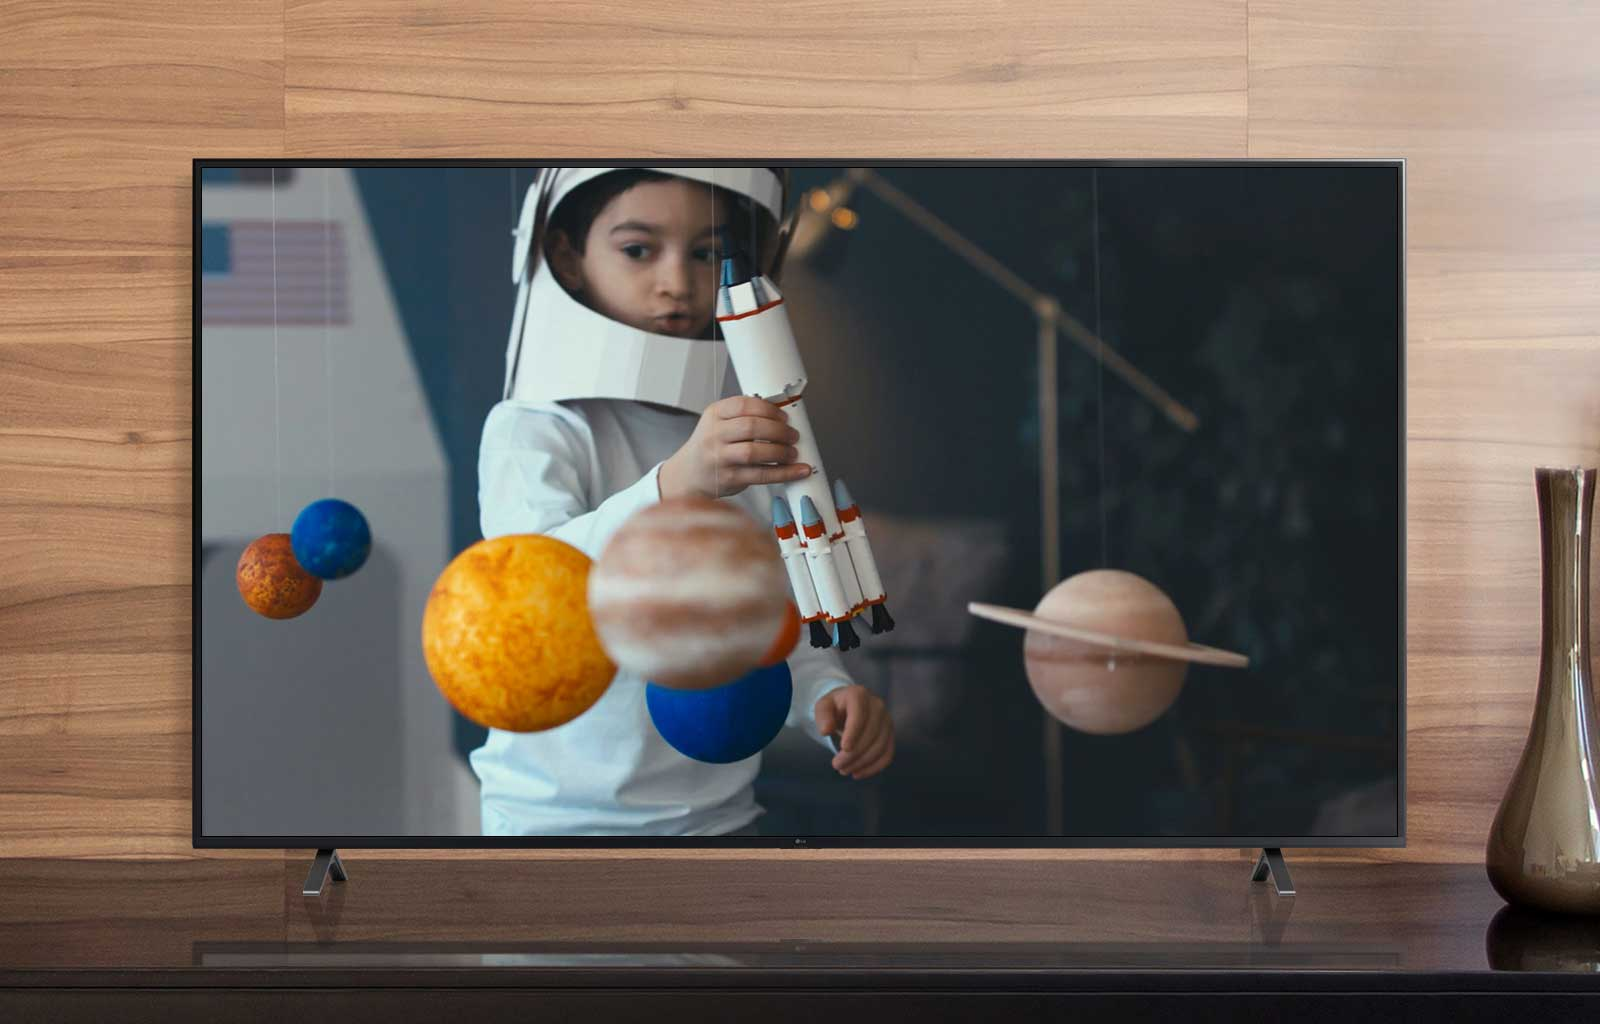 A TV screenplaying a video of a boy in an astronaut suit he made playing with a spaceship in his room decorated with miniatures of planets (play the video)